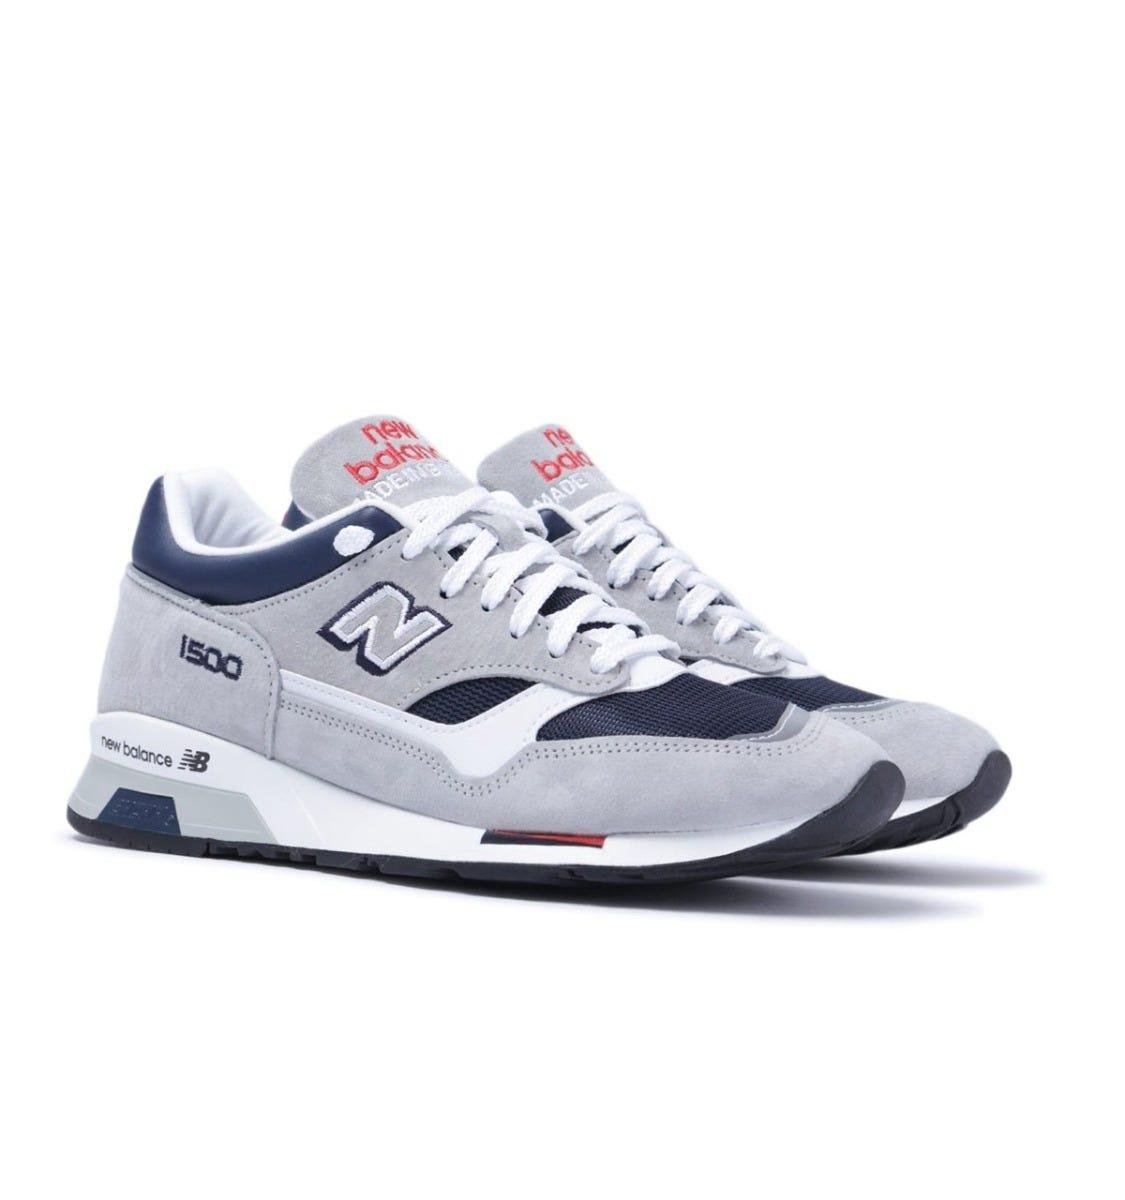 M1500 Made In England Grey/blue Trainers